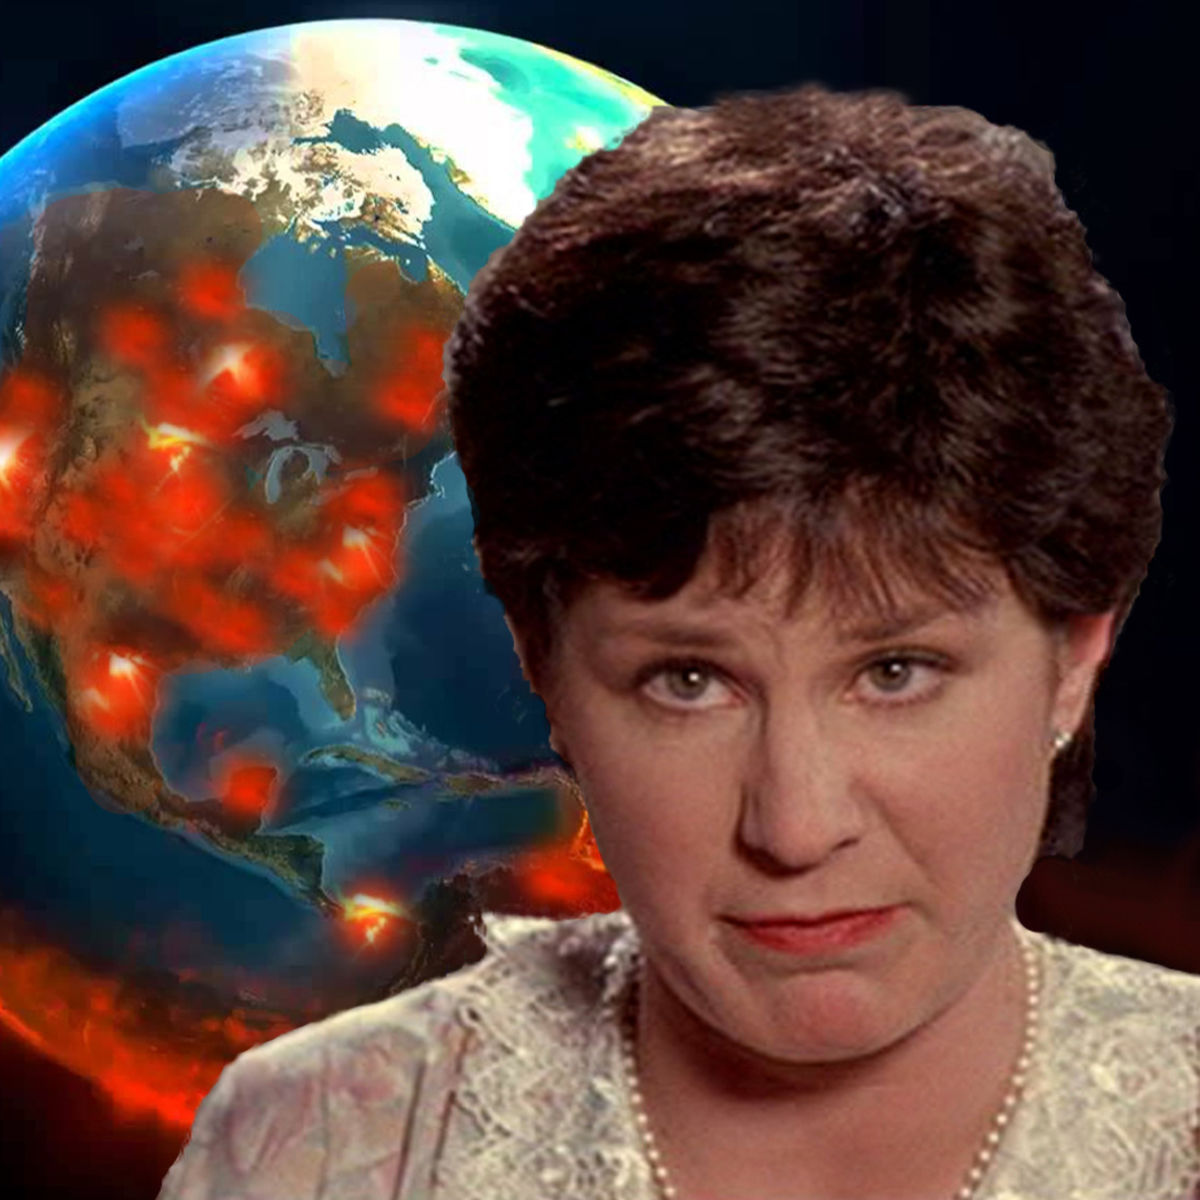 ghostbusters-ii-chloe-webb-burning-world.jpg